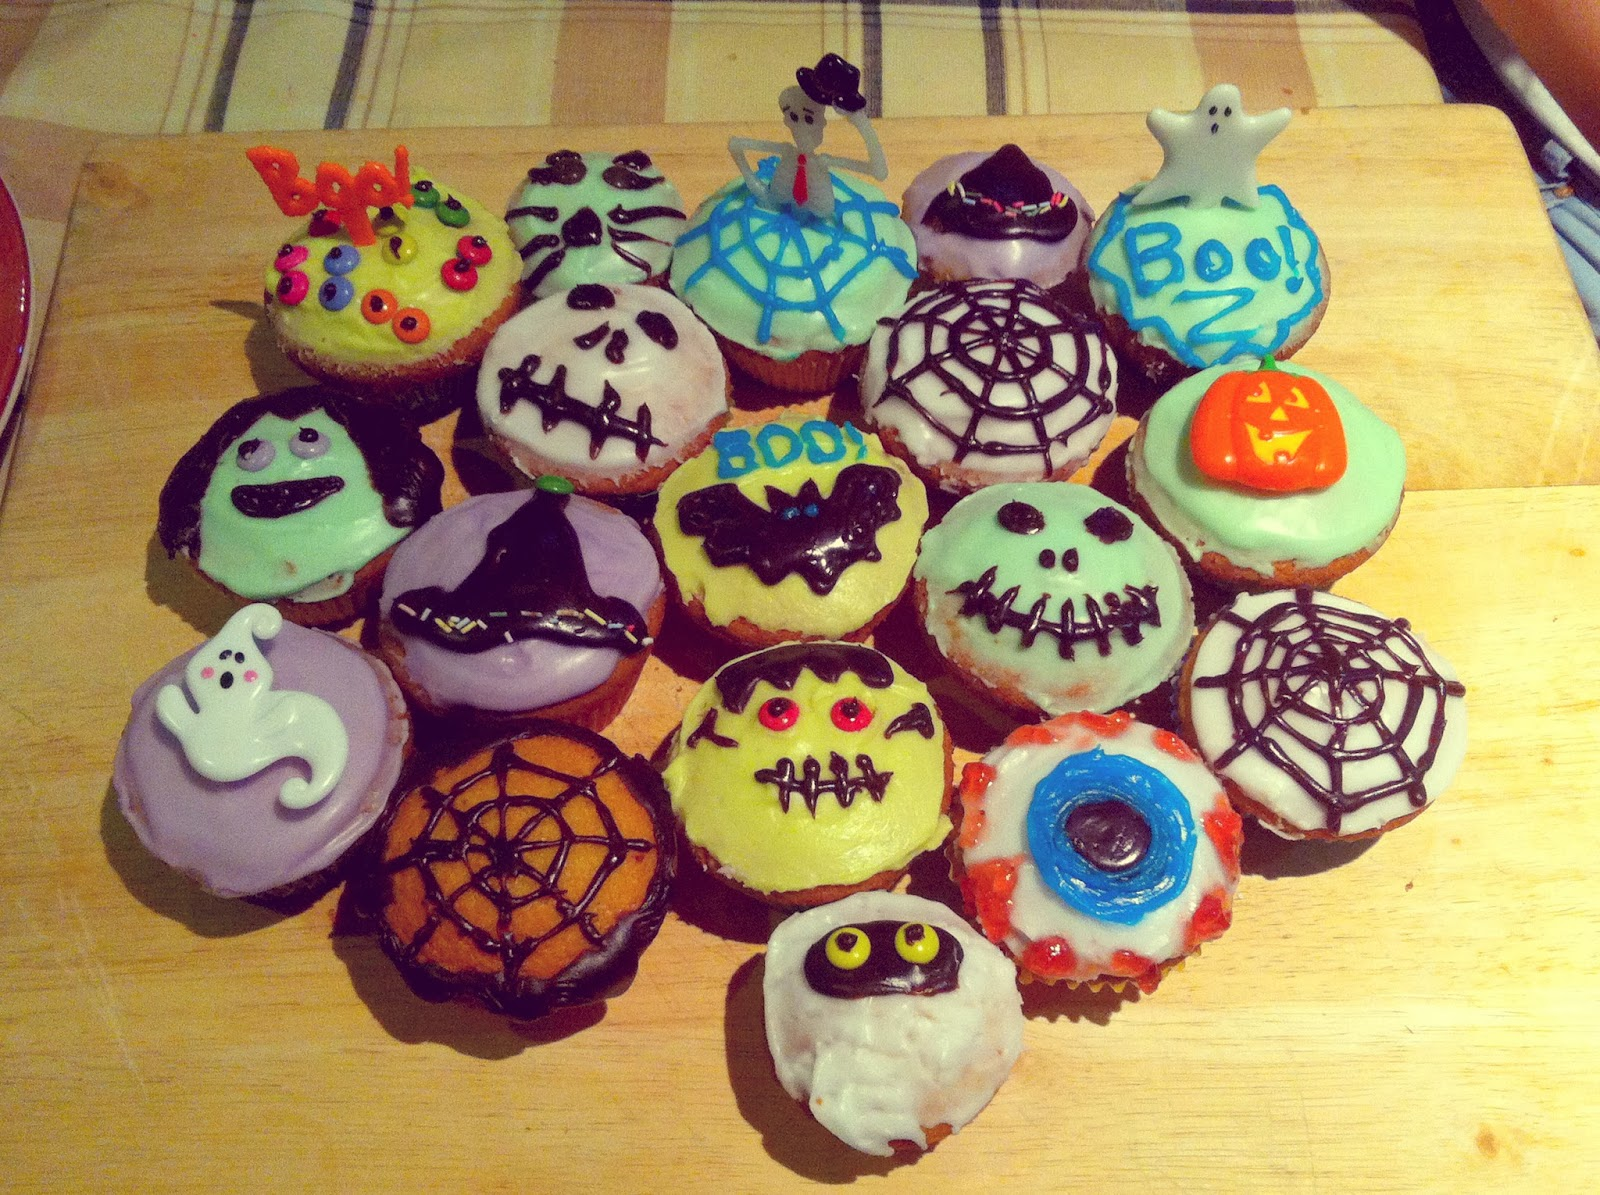 Blondie 39 s style fix october 2013 - Halloween decorations for cupcakes ...